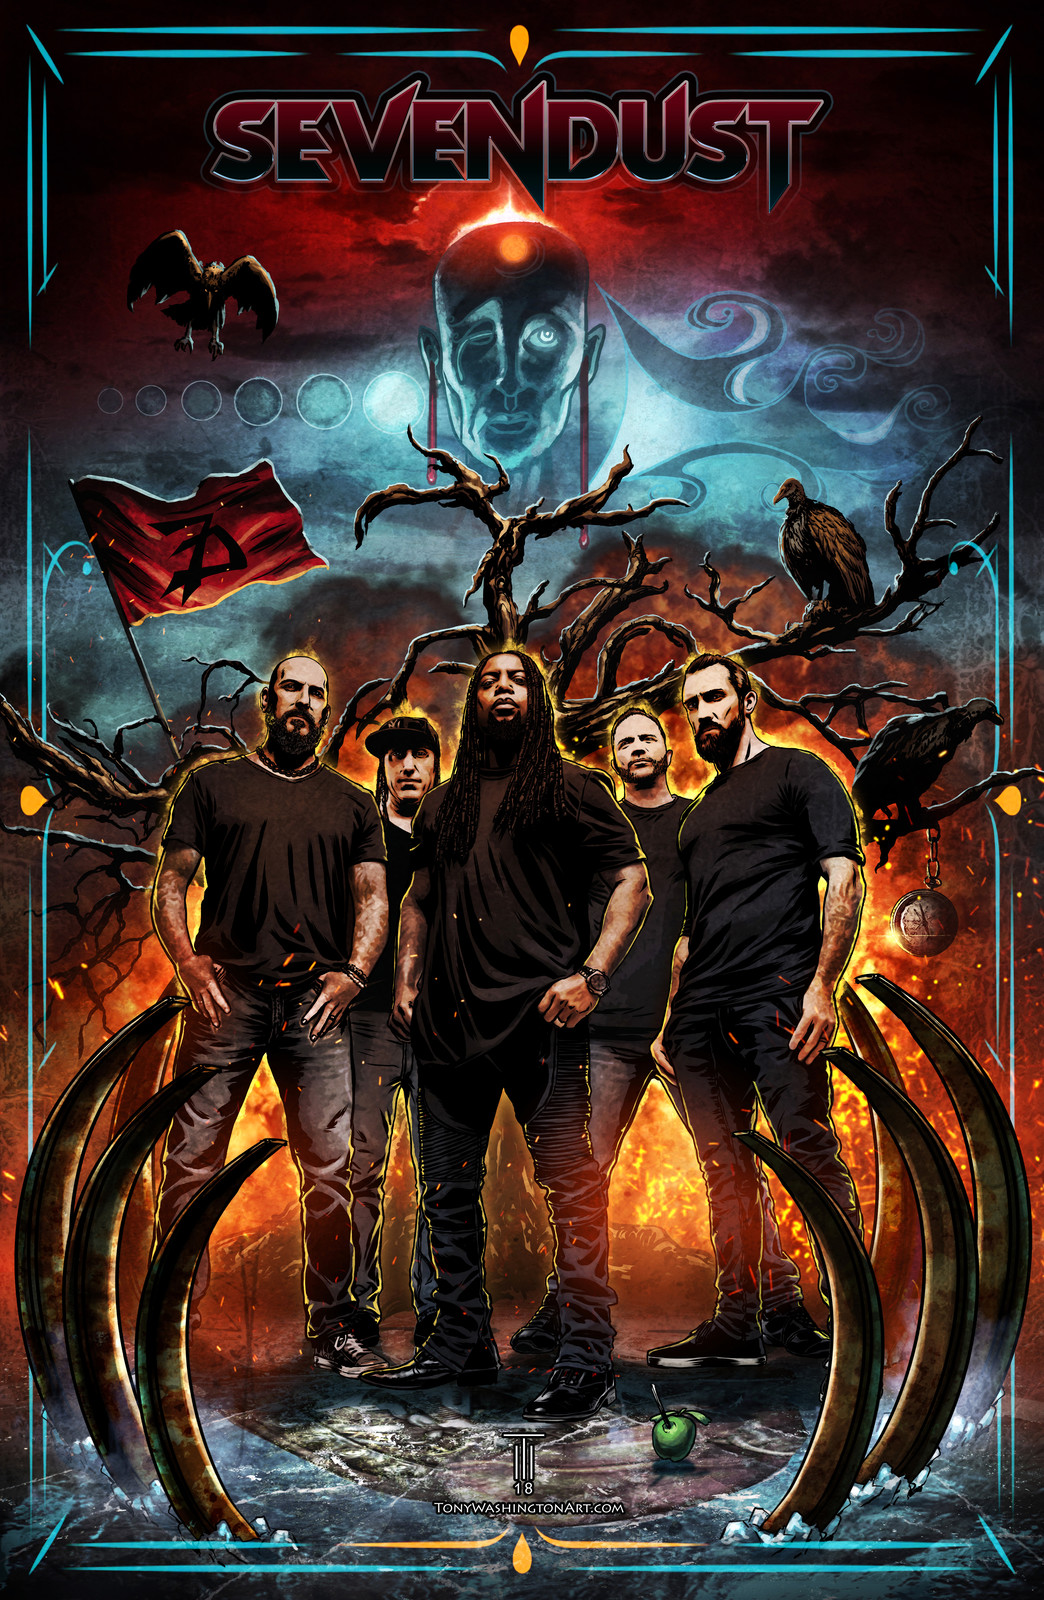 Sevendust Fan Art